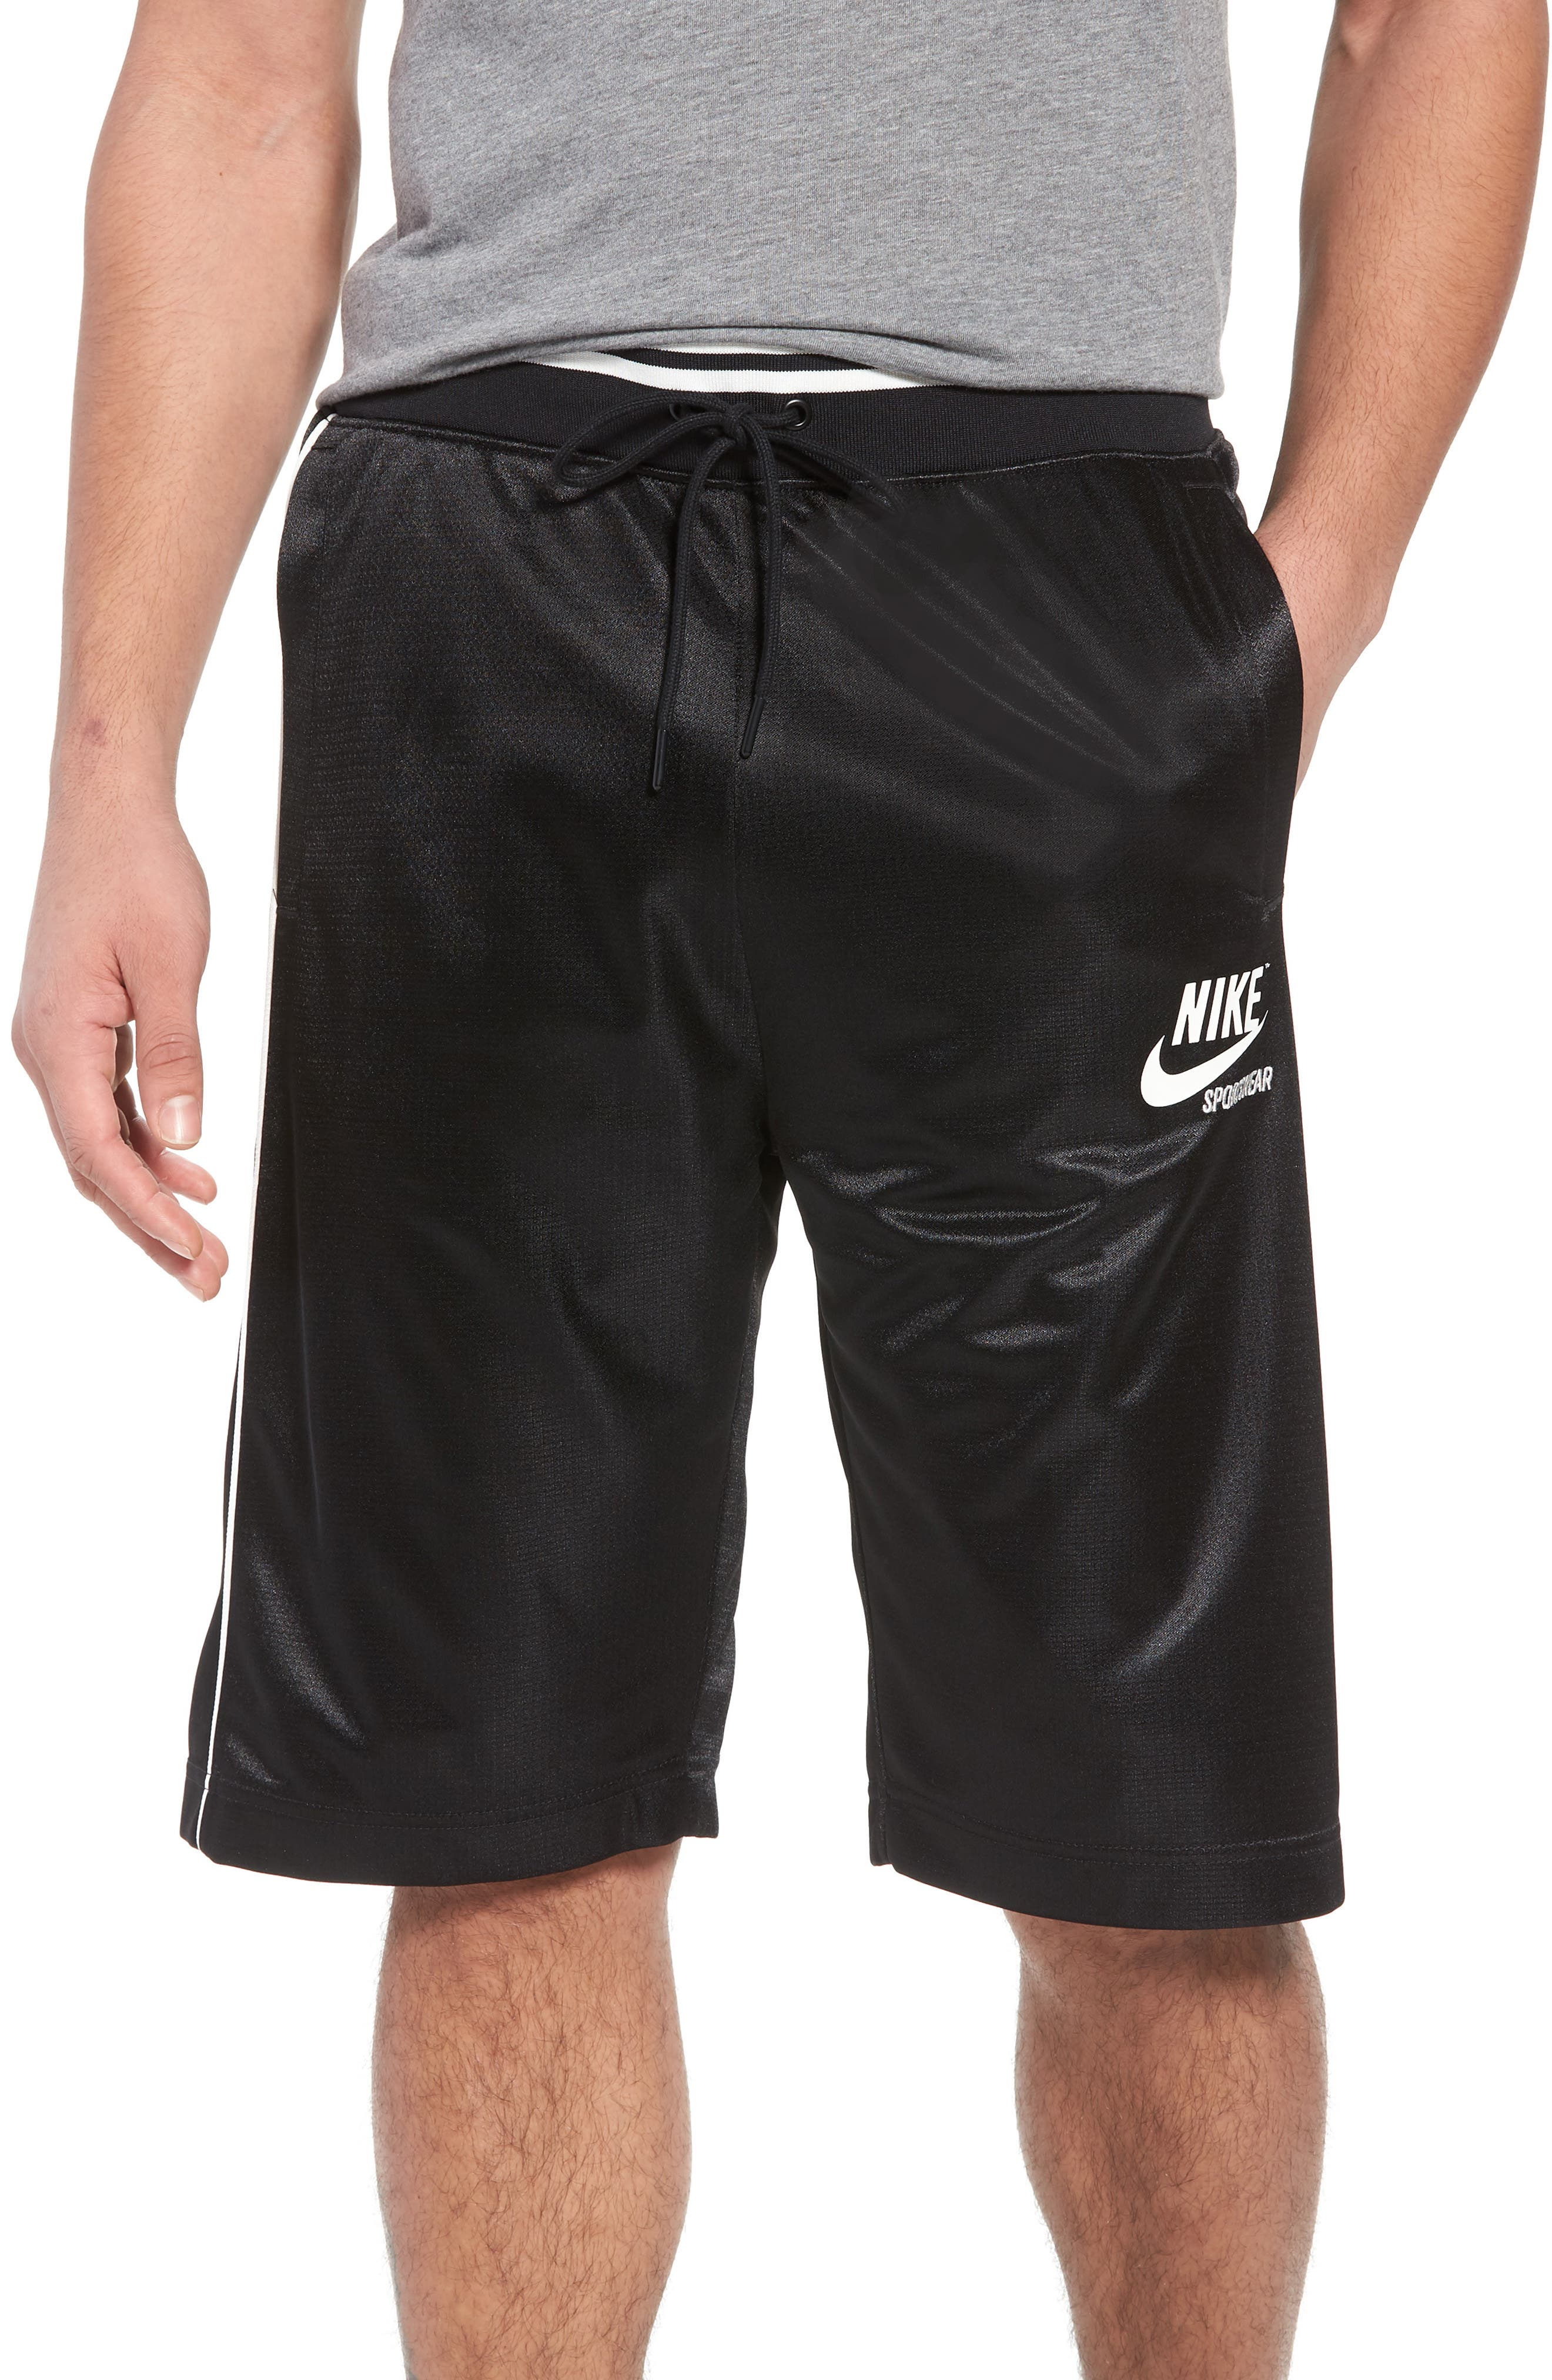 NSW Archive Shorts,                         Main,                         color, 010